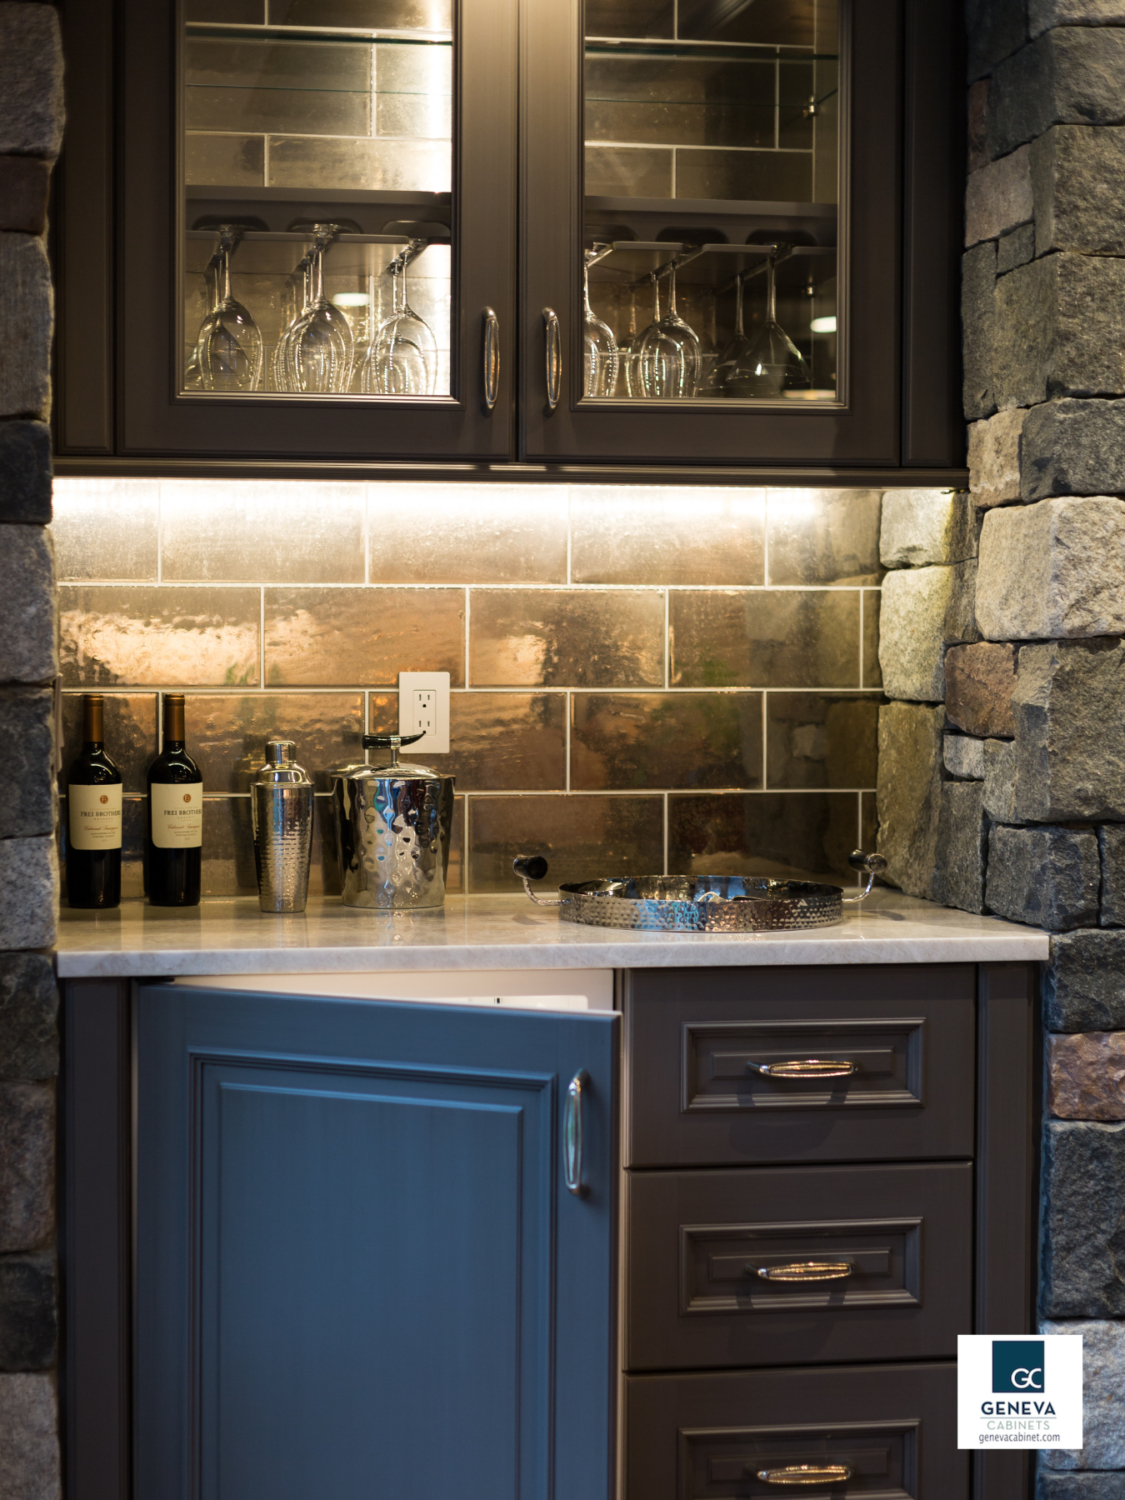 Top 10 Tips Prepare Your Kitchen For Holiday